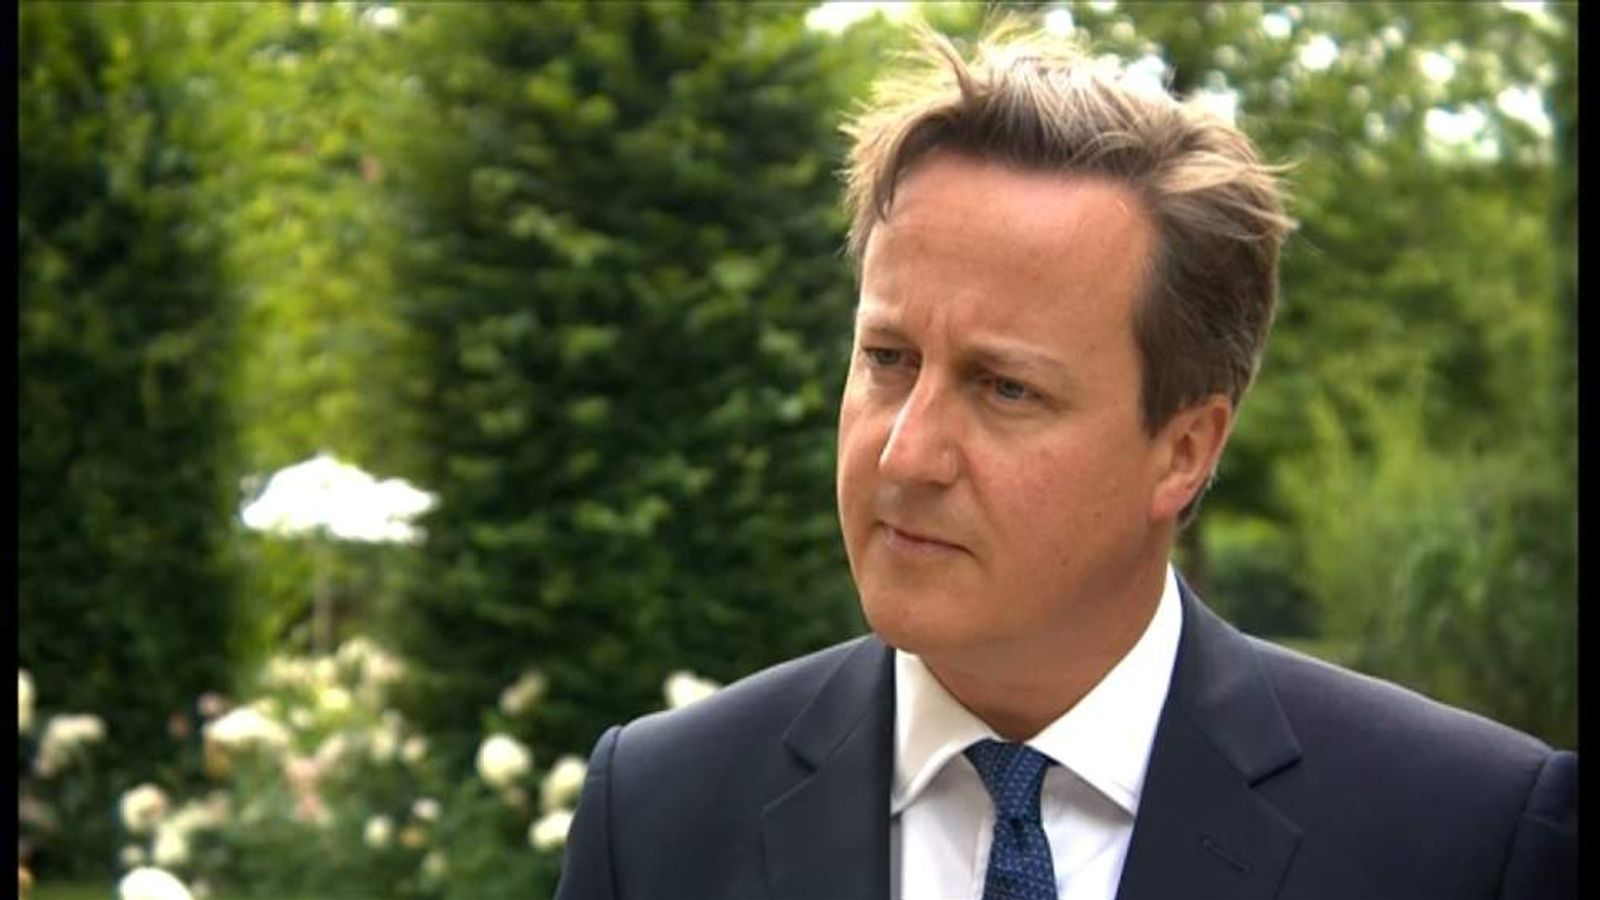 David Cameron talks about the EU on a trip to Ypres, Belgium